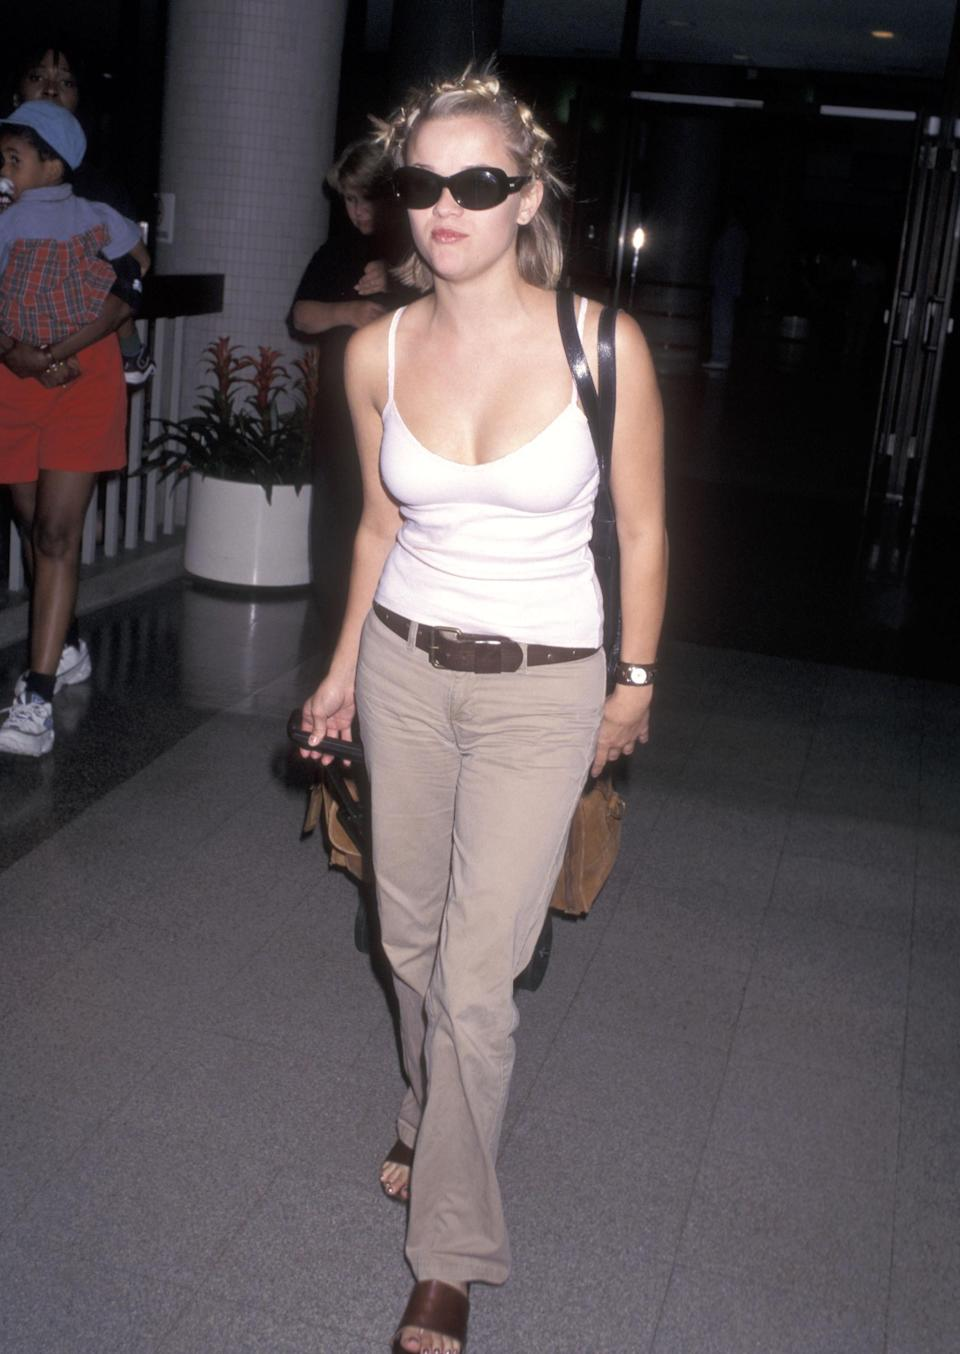 Photo of Reese Witherspoon at the airport